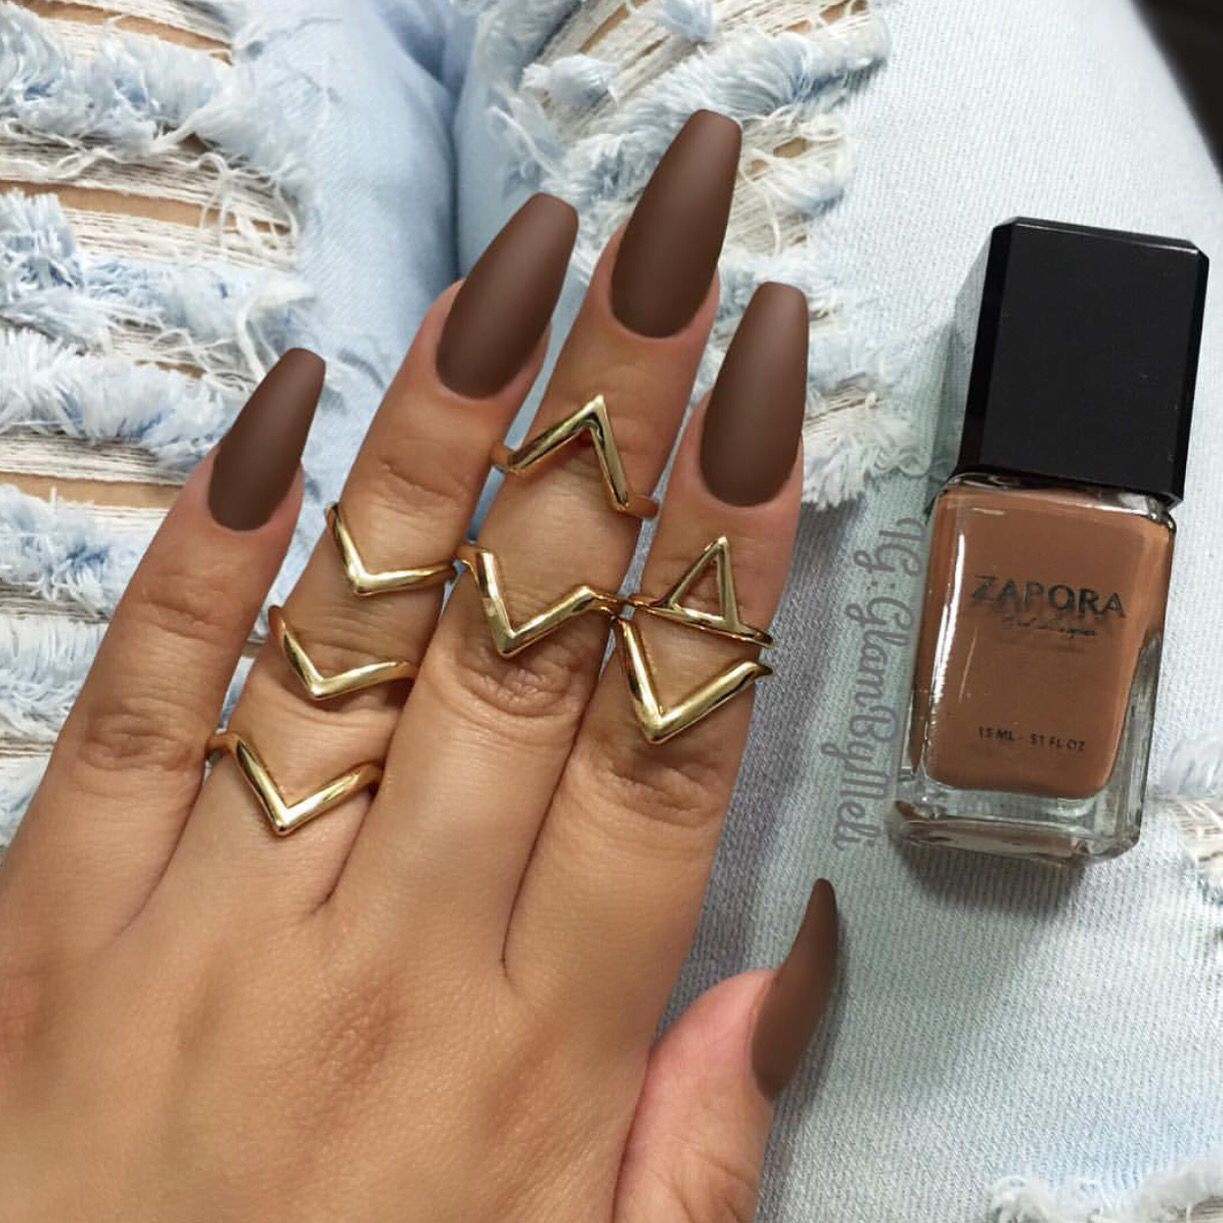 Pin by jazmyne hudson on Nails | Pinterest | Nuggwifee, Brown nail ...